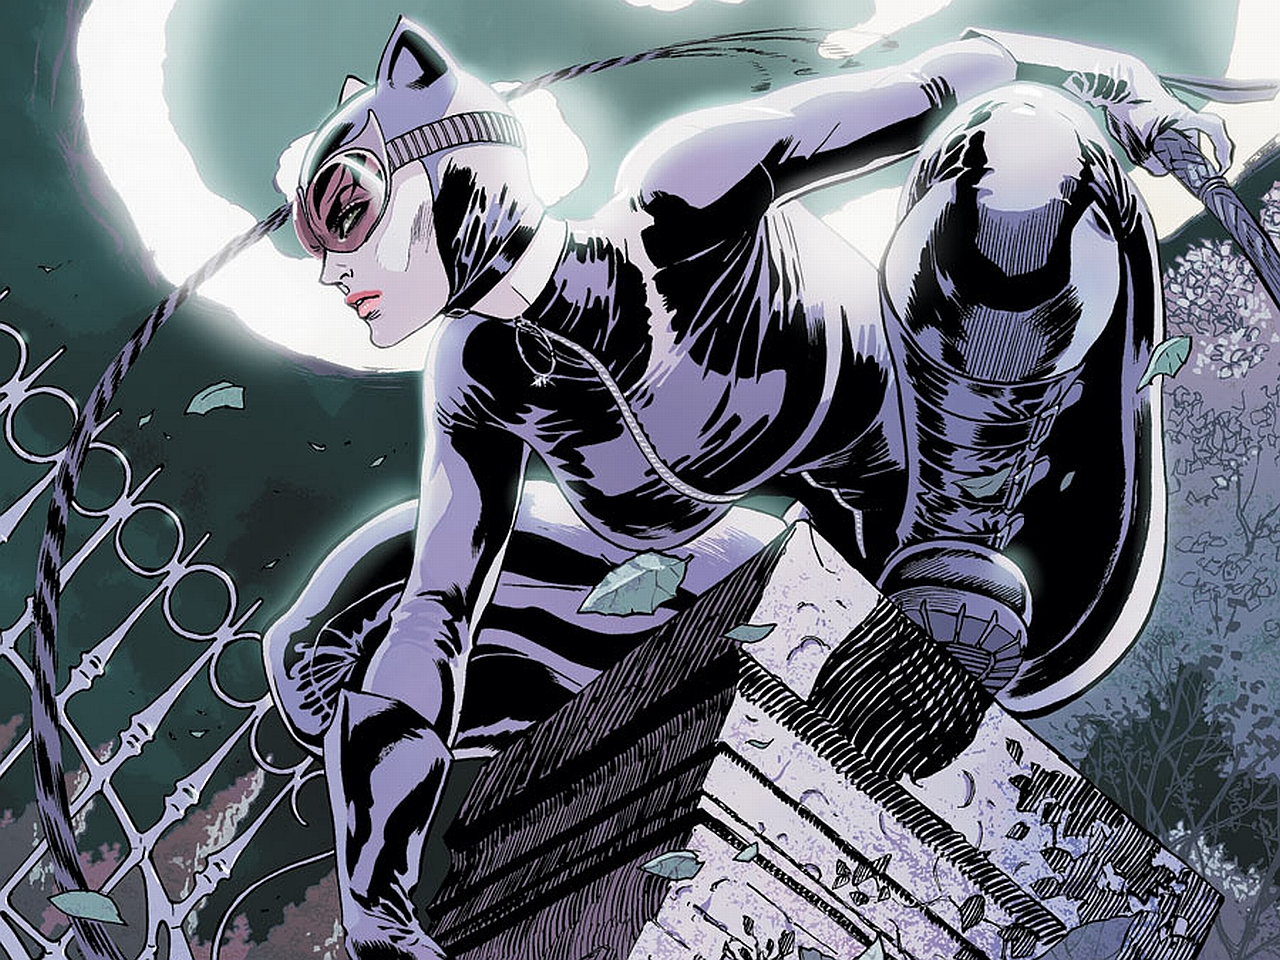 Catwoman Computer Wallpapers Desktop Backgrounds 1280x960 ID 1280x960